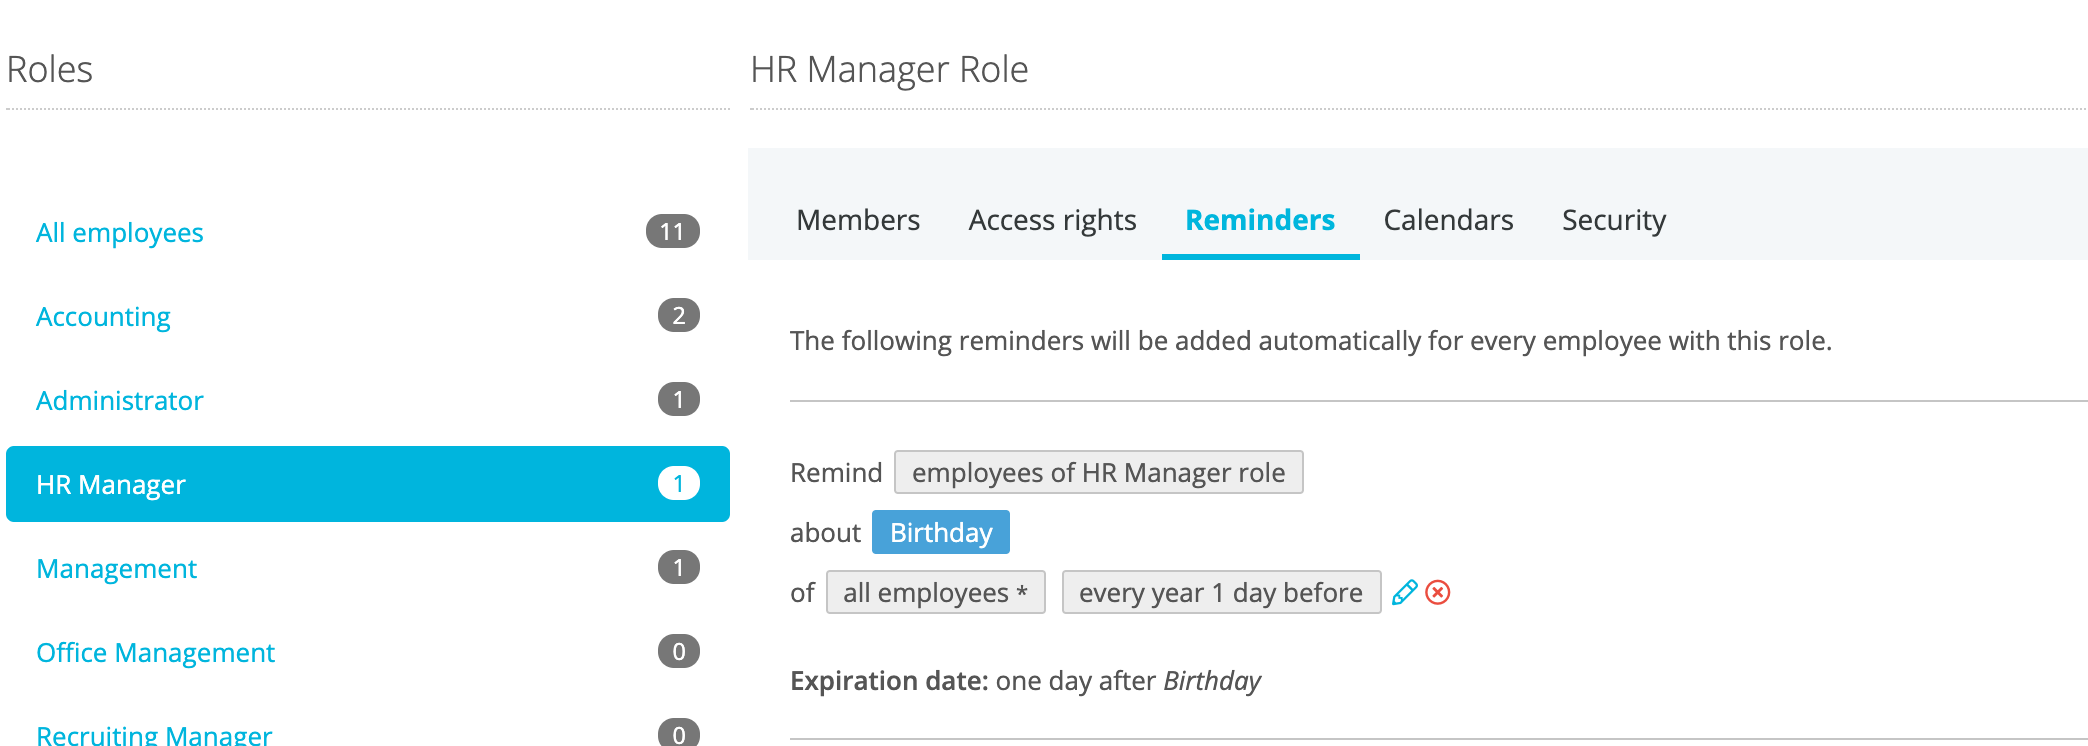 settings-roles-reminders-overview_en-us.png